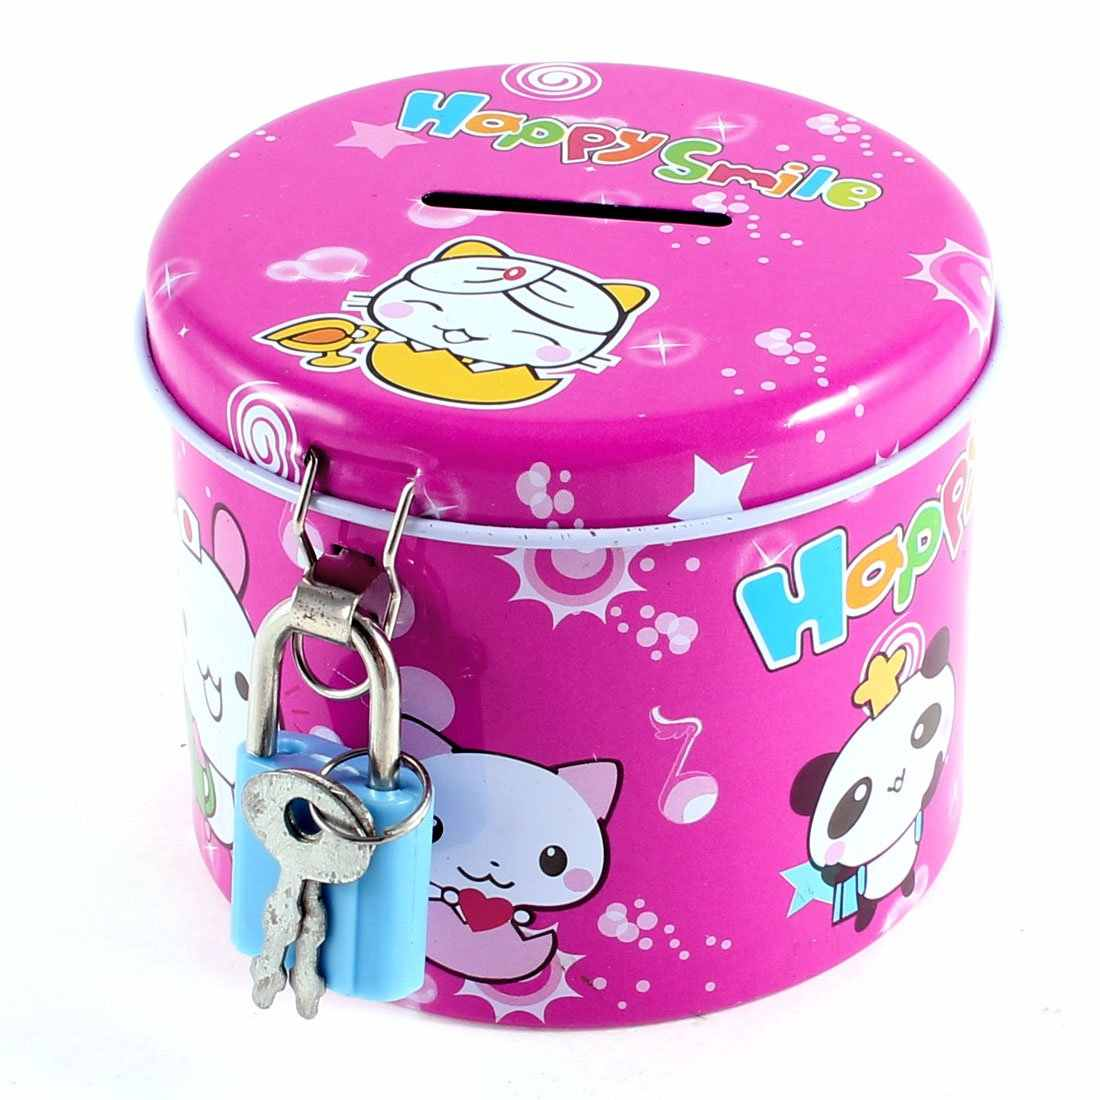 Newest Arrive Cylinder Design Cartoon Print Fuchsia Piggy Bank Coin Money Saving Box w Padlock